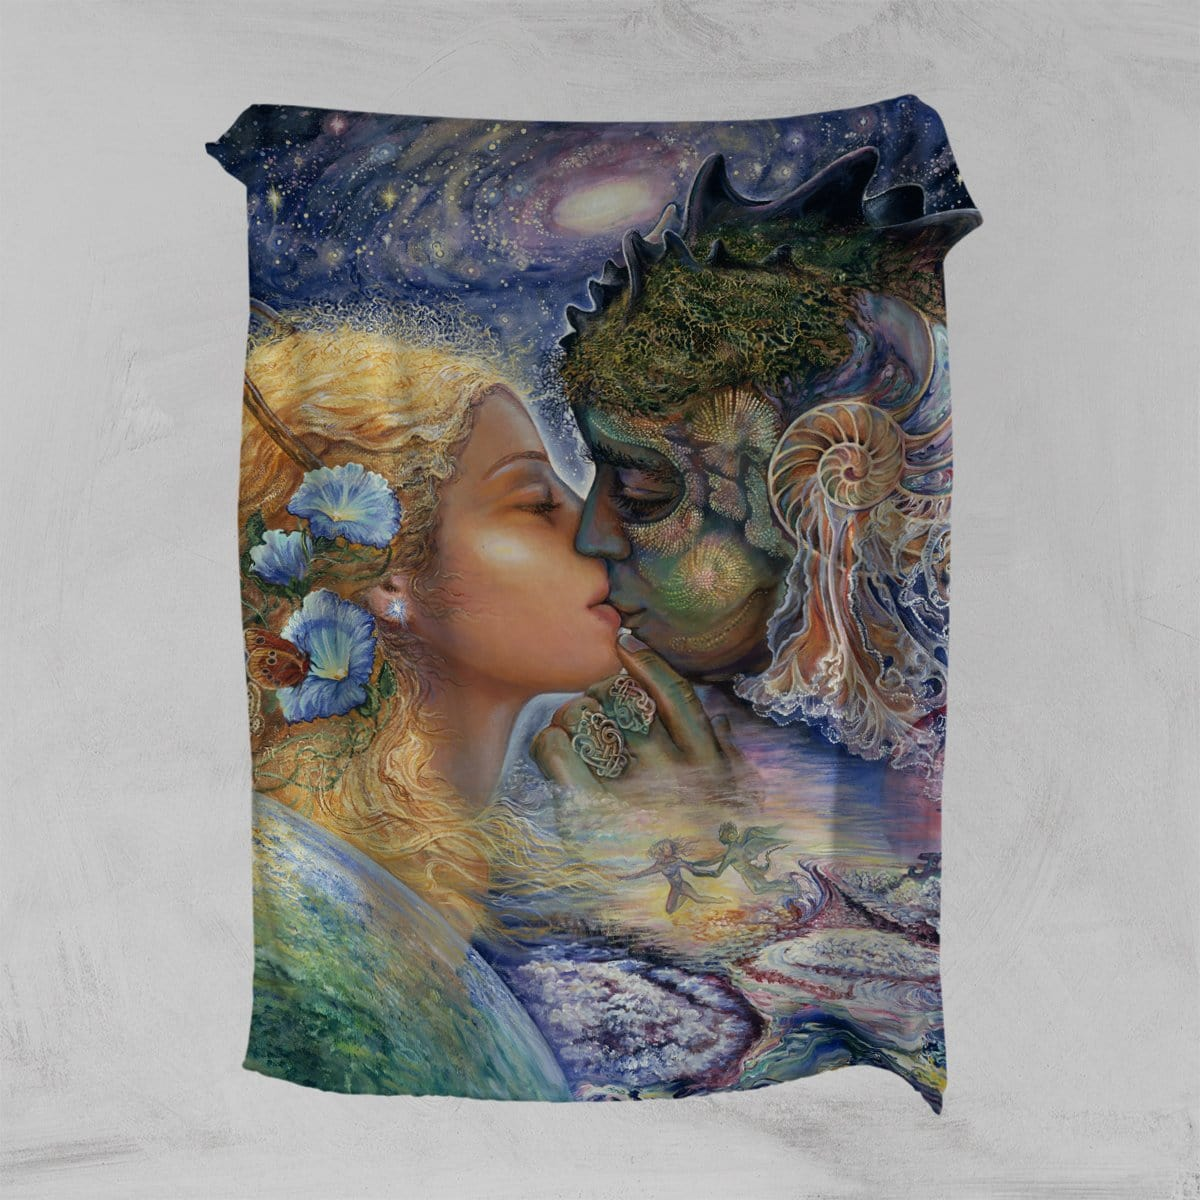 Cosmic Kiss Squiffy Minky Blanket-Josephine Wall-Little Squiffy